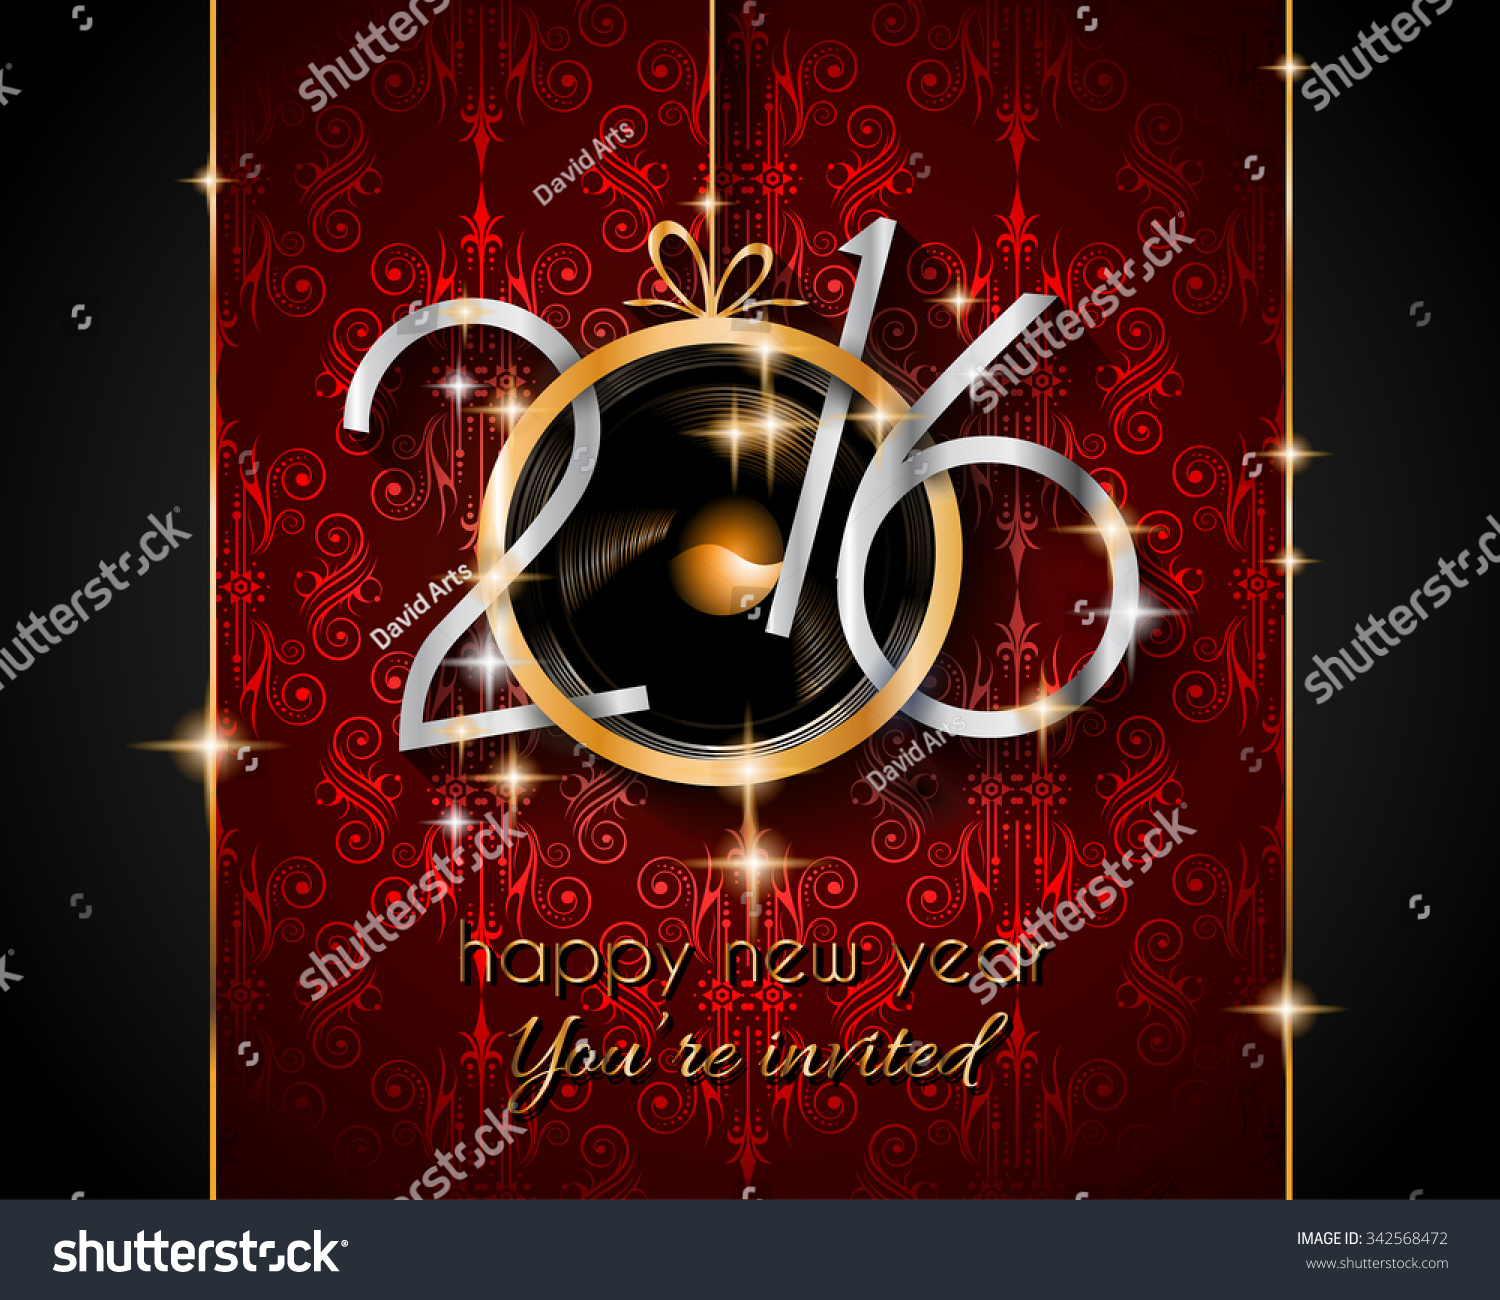 2016 Happy New Year and Merry Christmas Background for your seasonal wallpapers greetings card dinner invitations pary flyers covers and so on